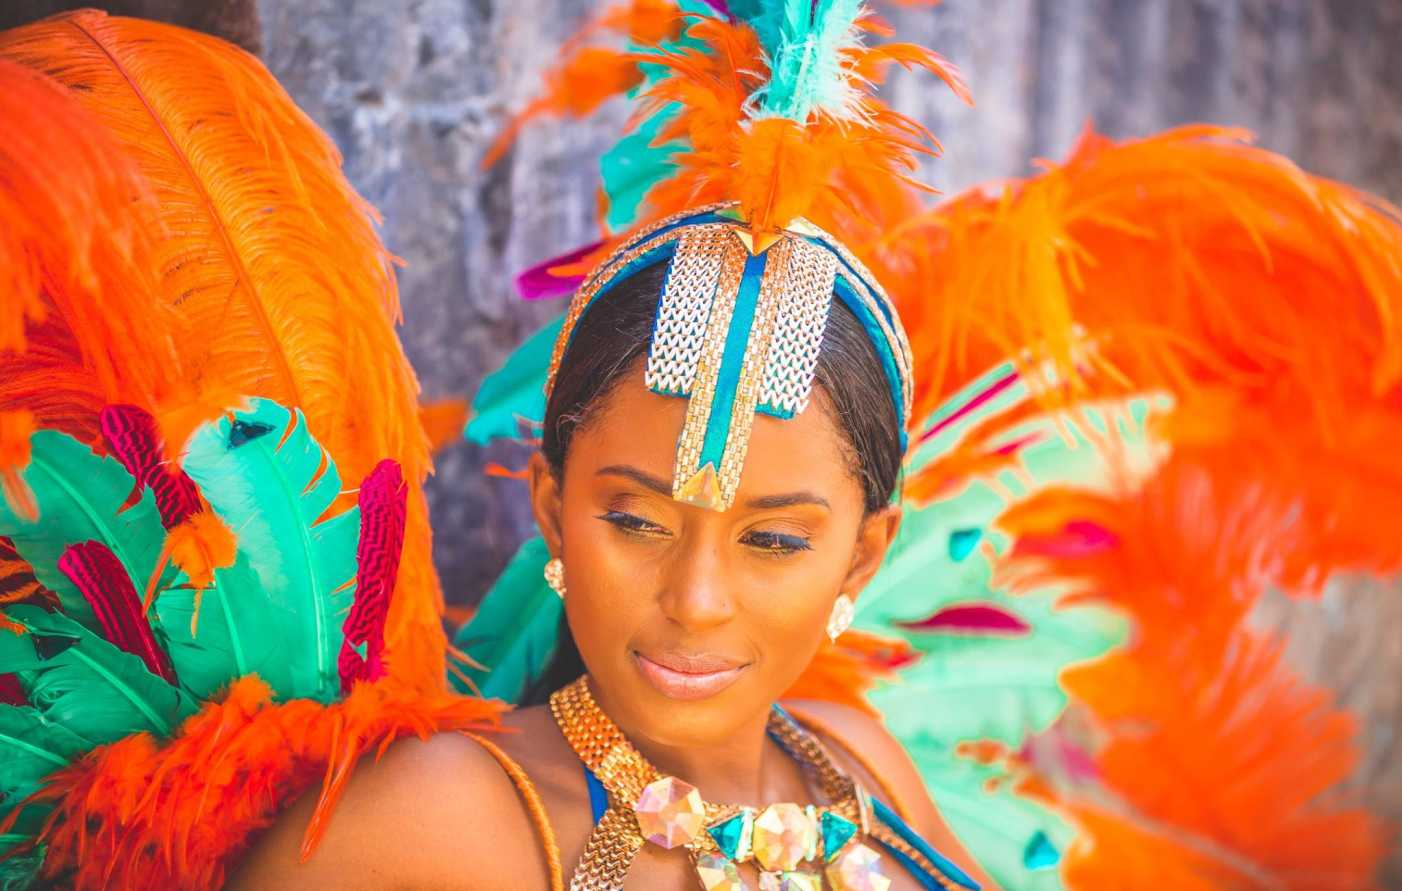 Bacchanal Frenchmen Costumes 2018 carnival